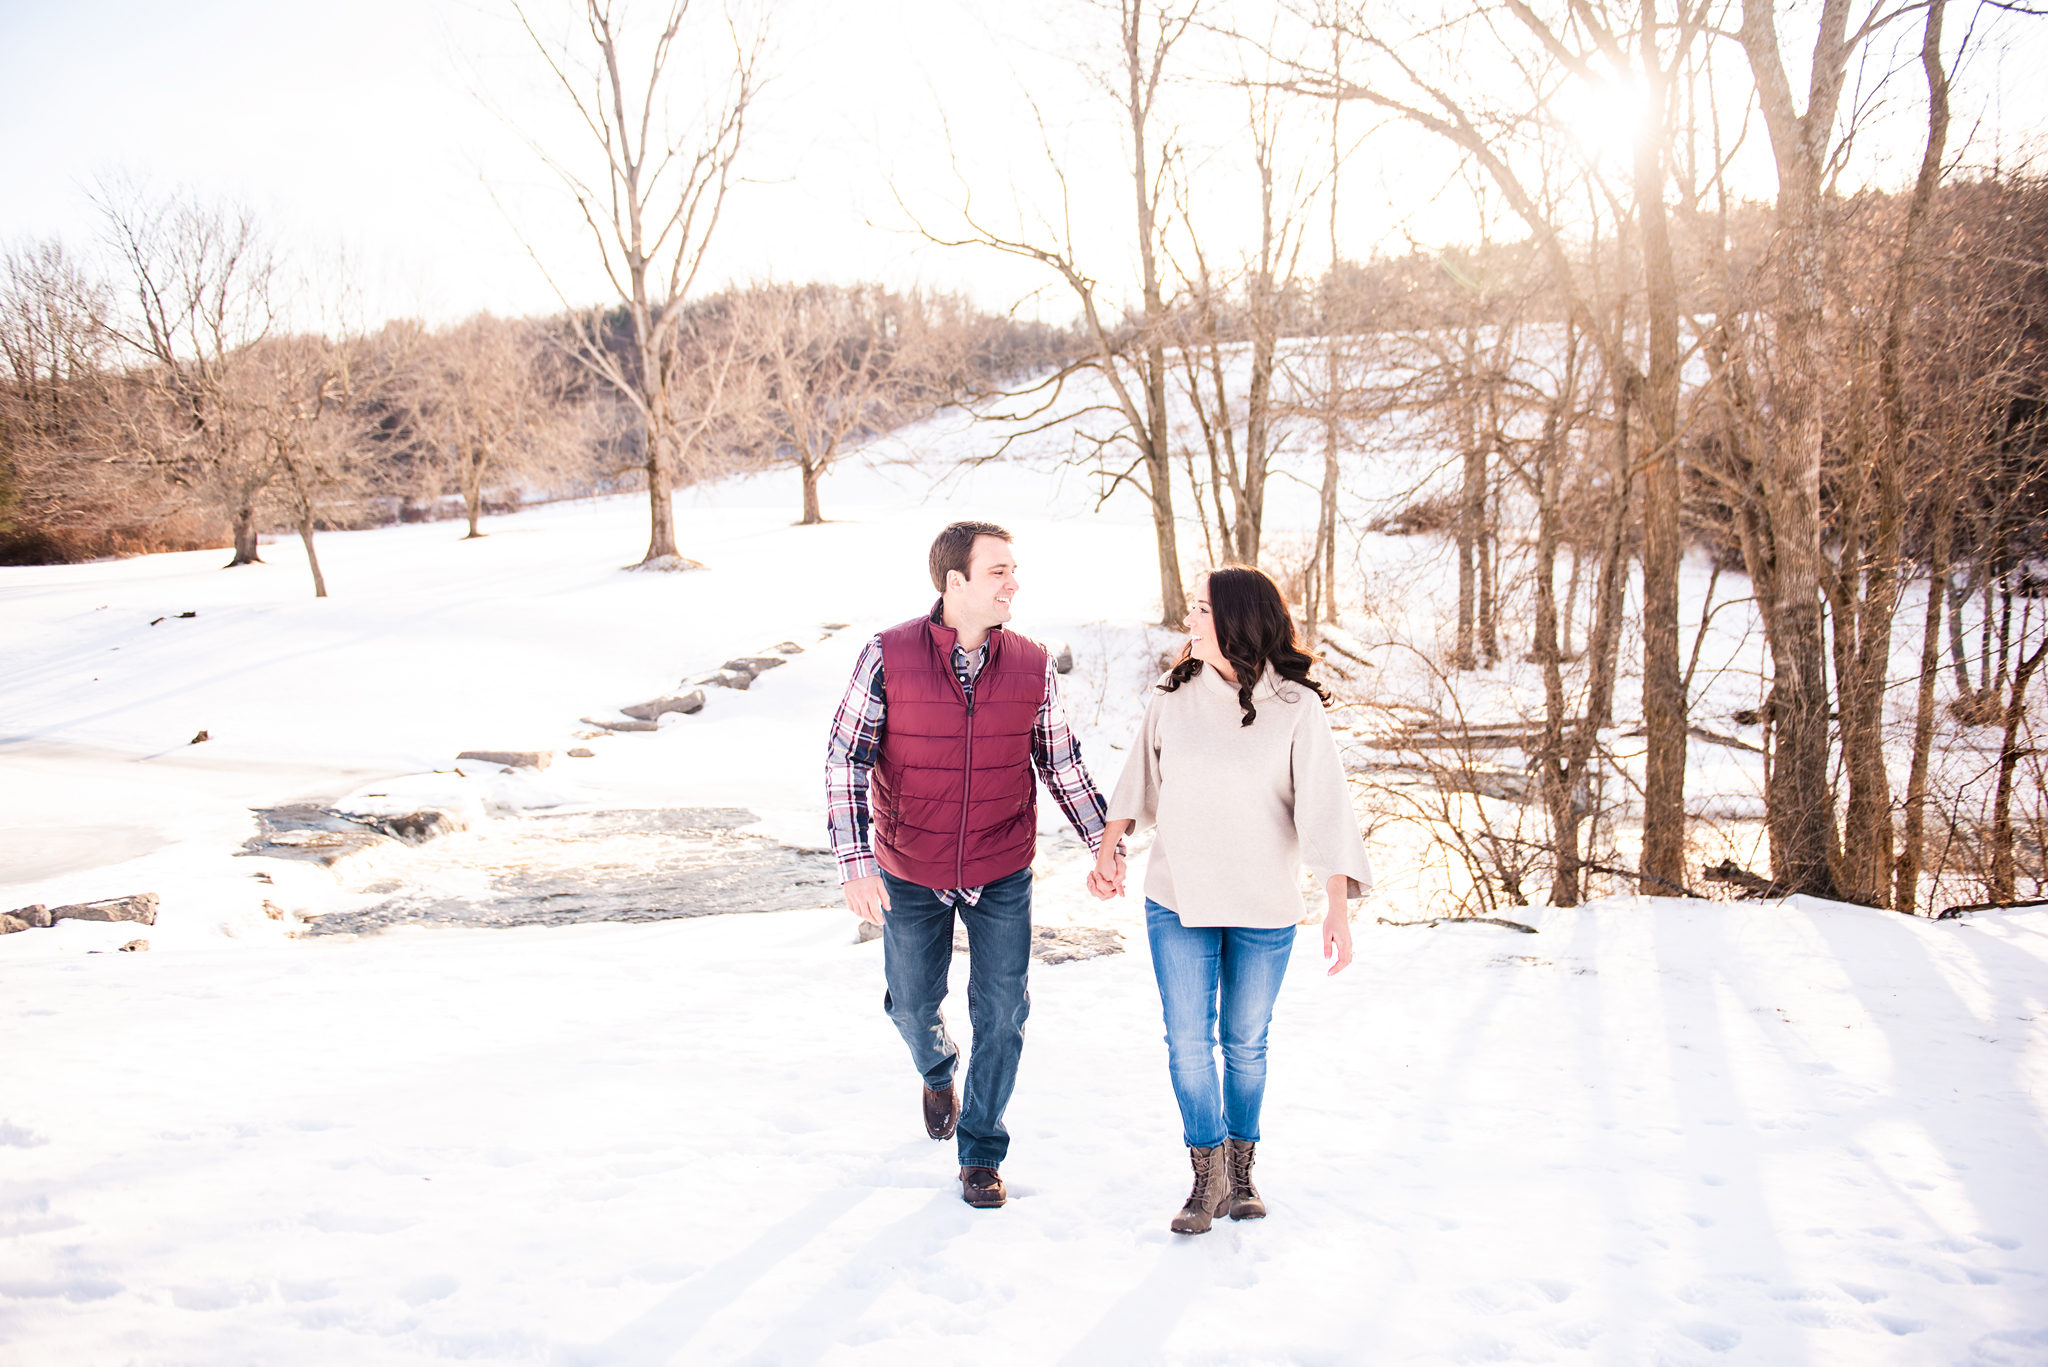 Fallbrook_Central_NY_Engagement_Session_JILL_STUDIO_Rochester_NY_Photographer_DSC_4723.jpg